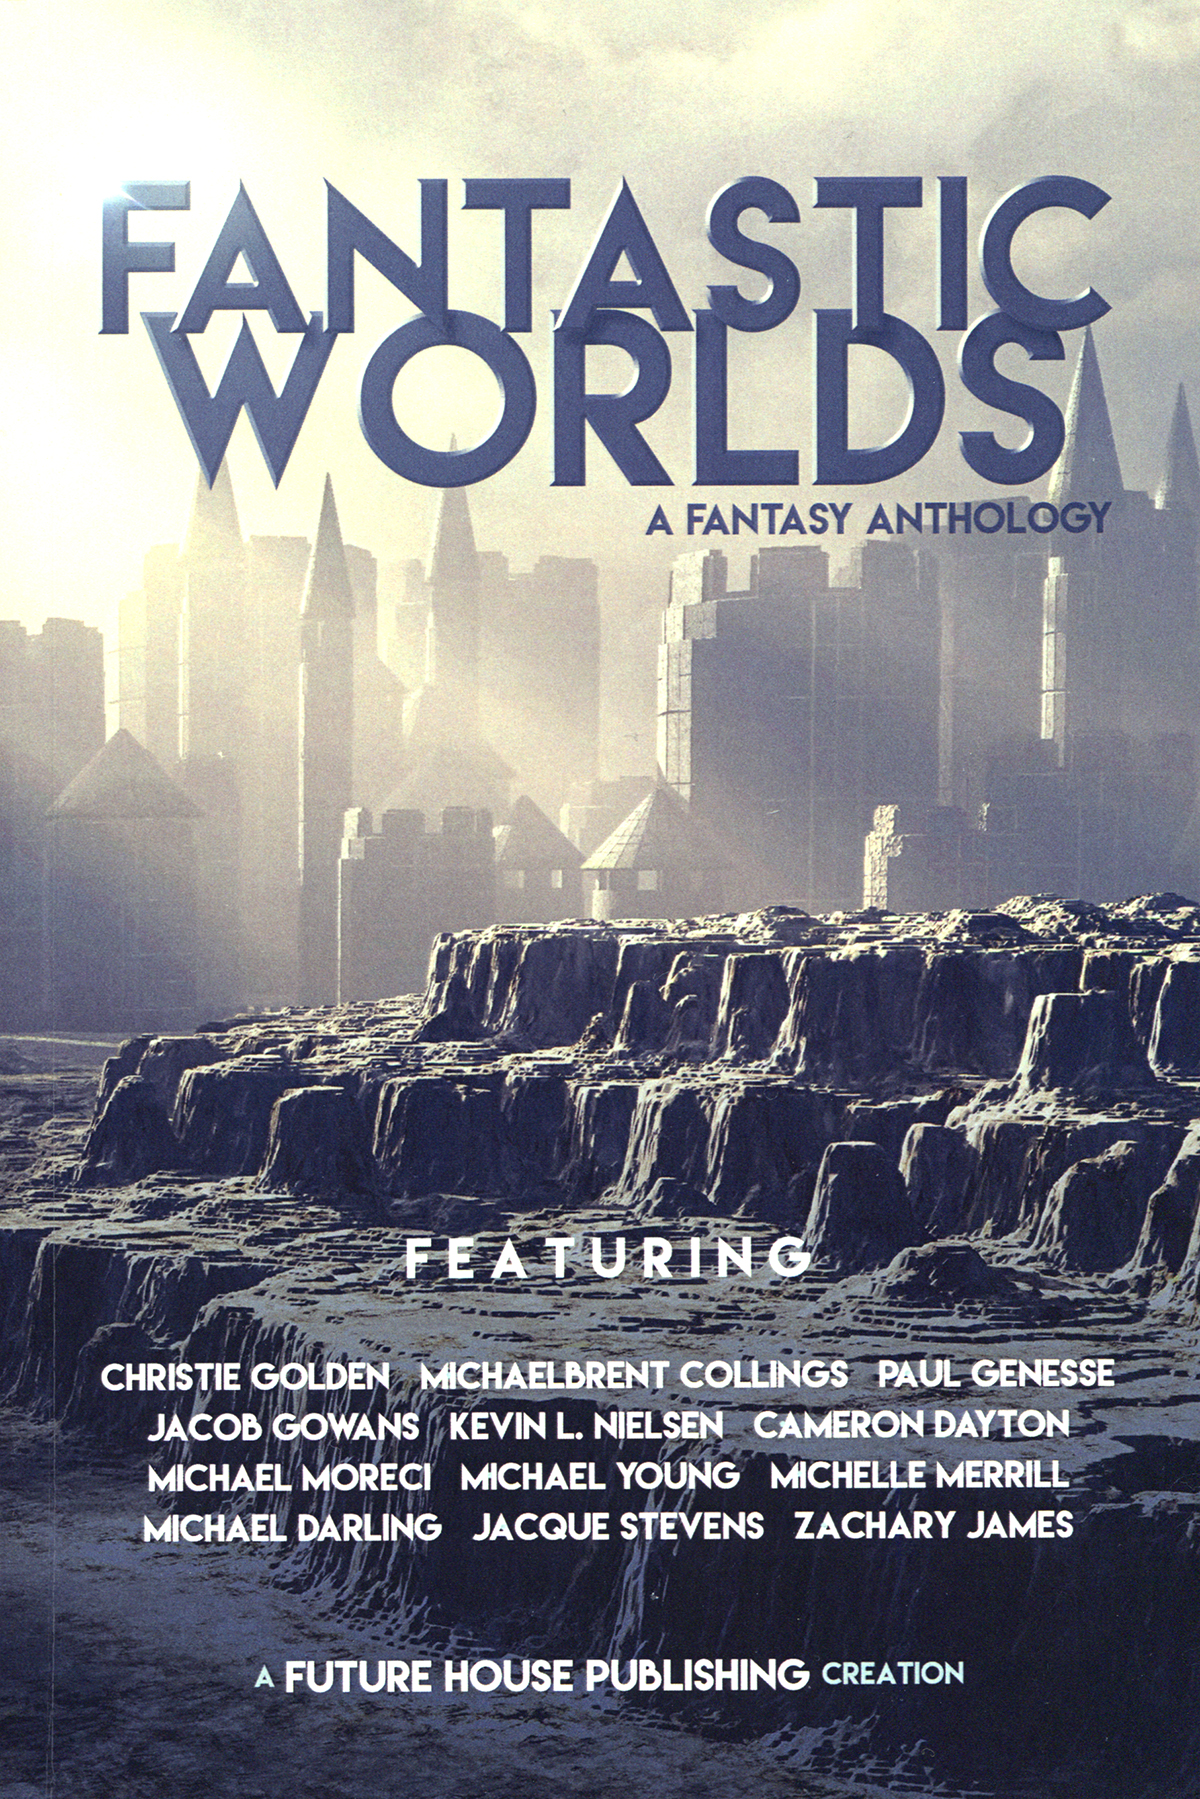 """Fantastic Worlds - A Fantasy Anthology"", editor unknown."